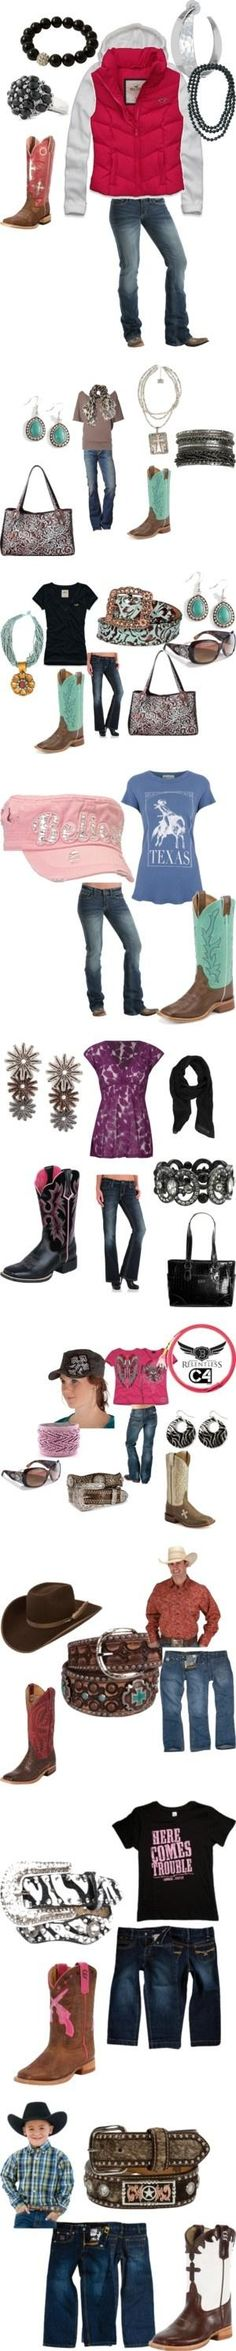 """My Cowgirl Life"" by rodeorosecowgirlboutique on Polyvore by MagnoliaBoho"